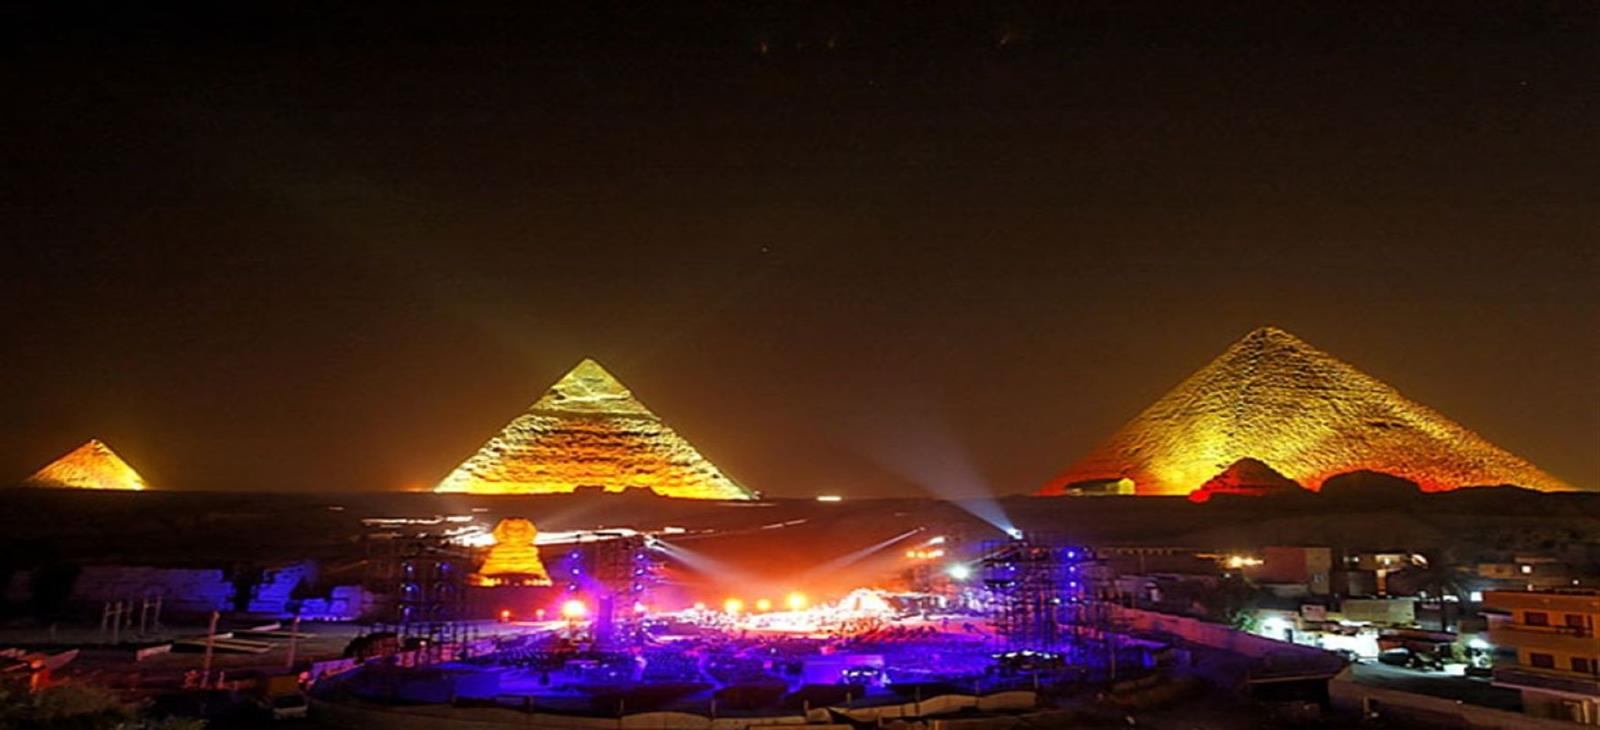 sound and light pyramids